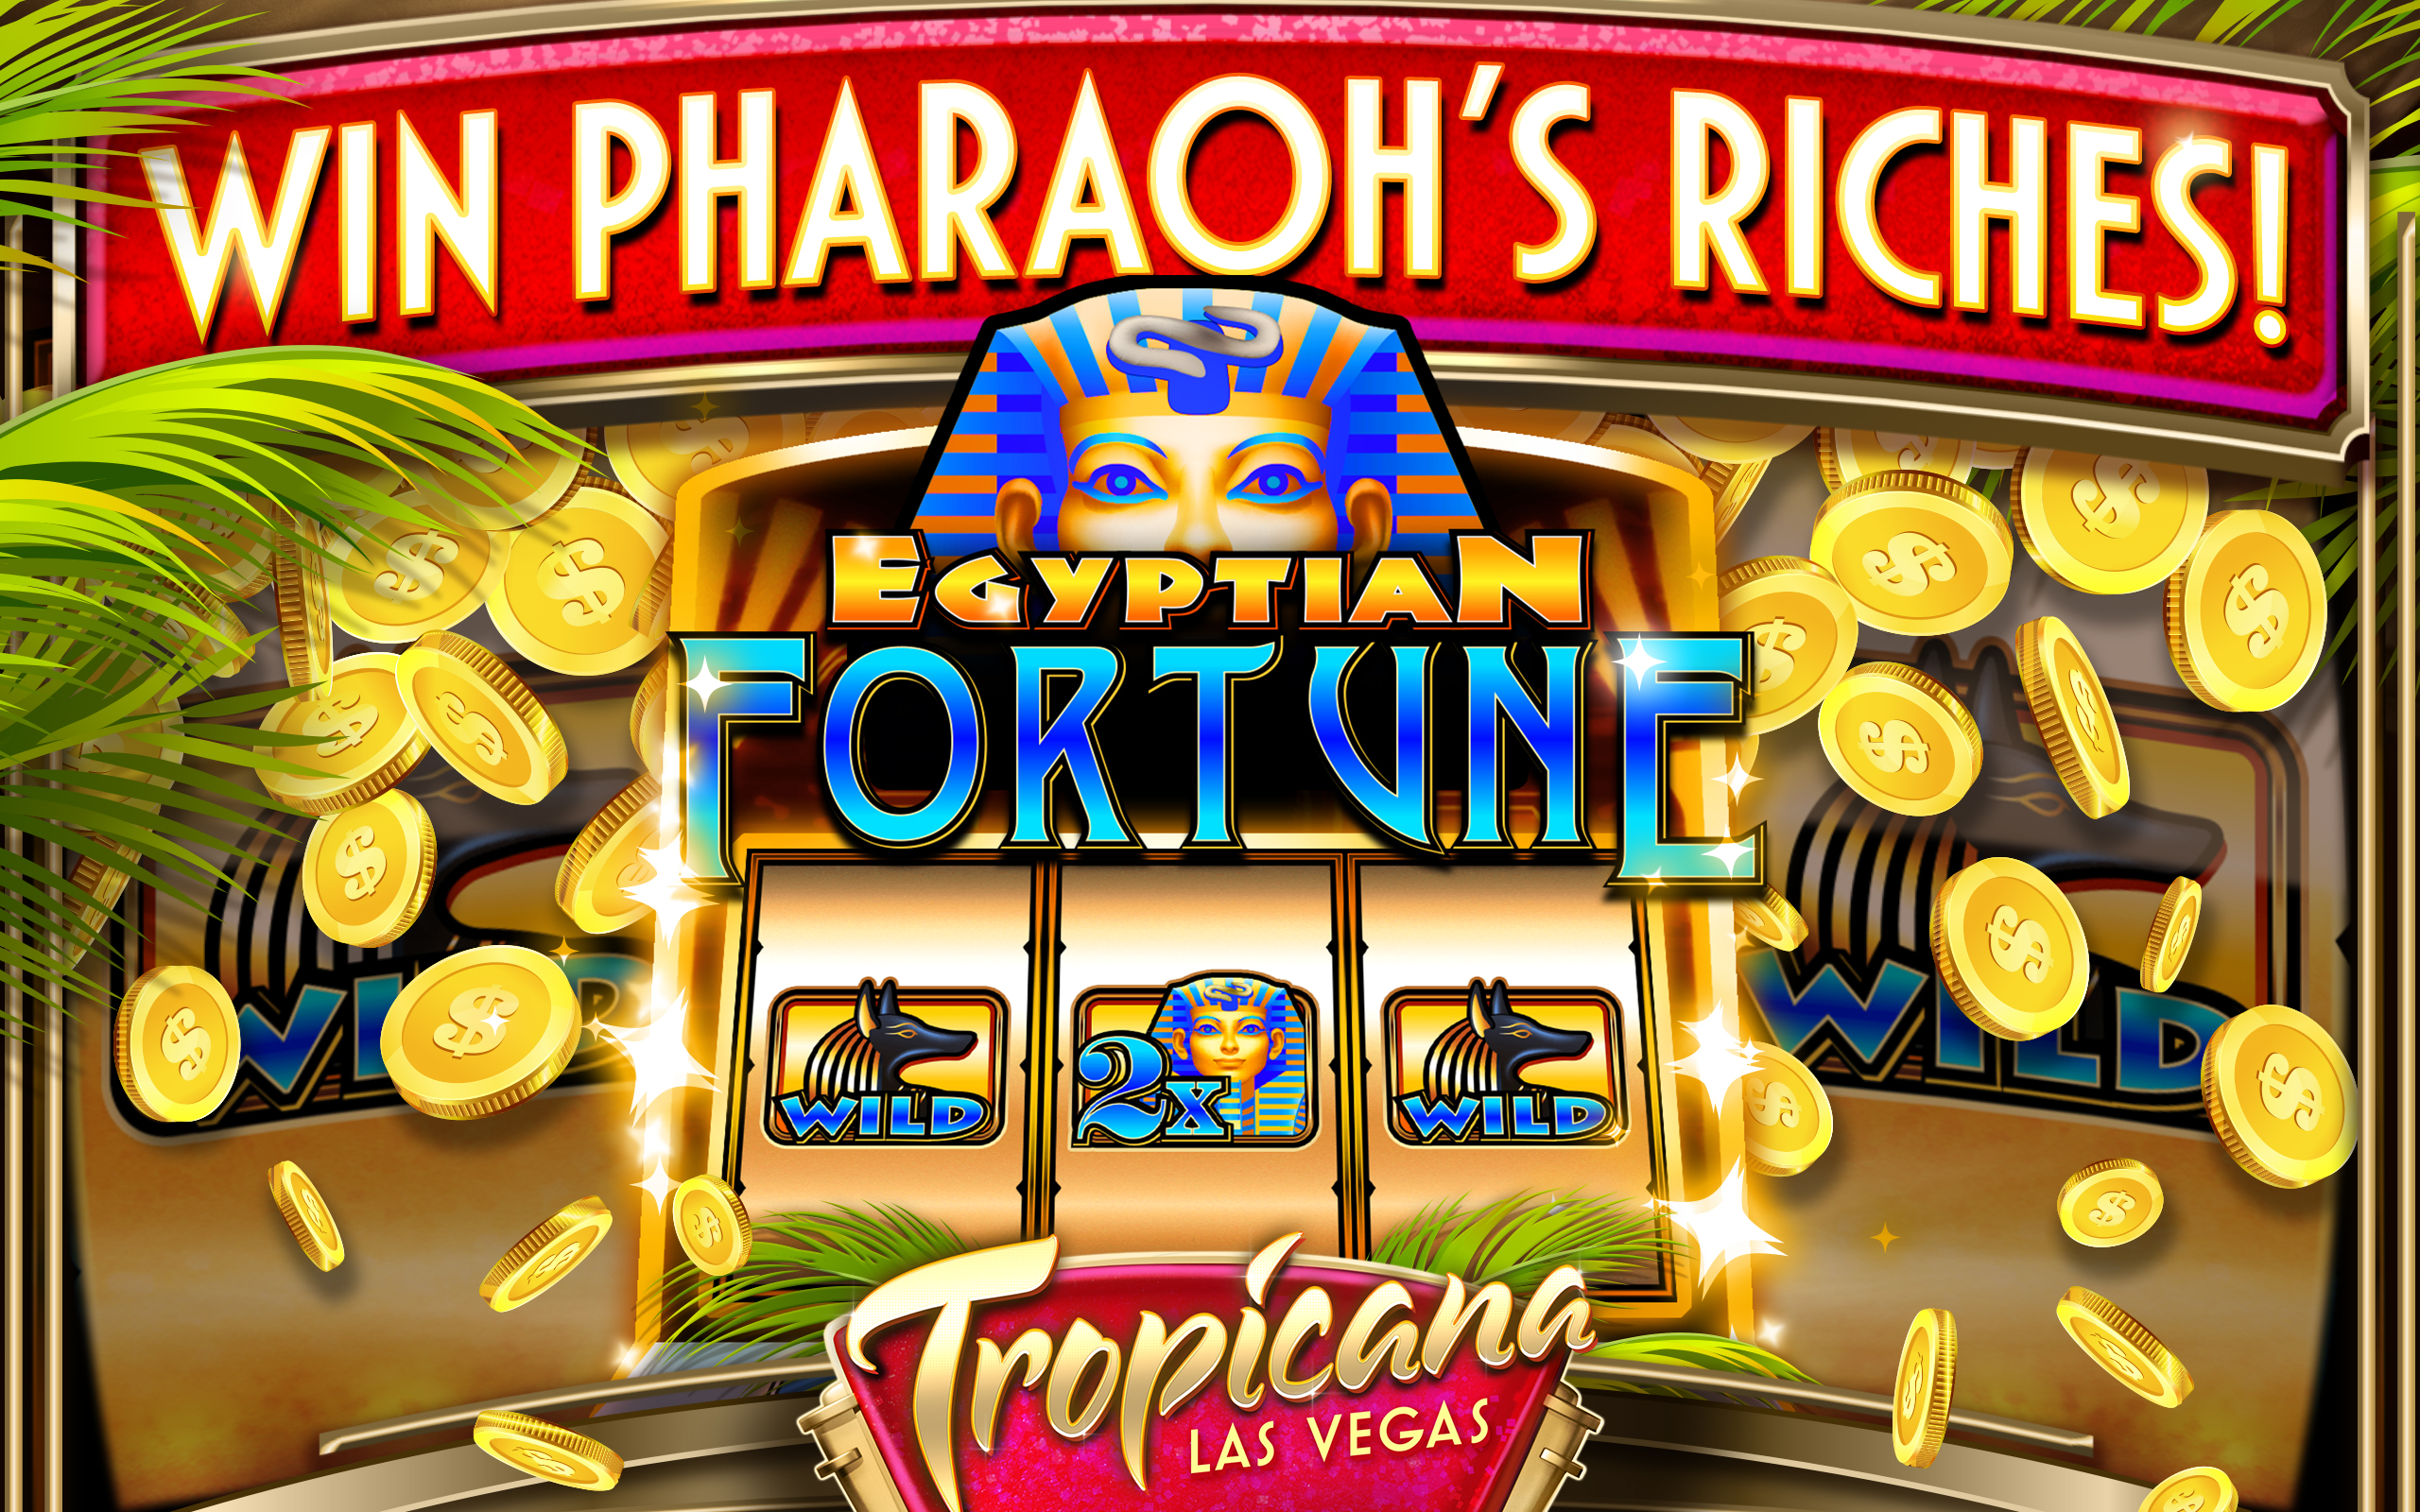 Las Vegas Free Slots Machines Games